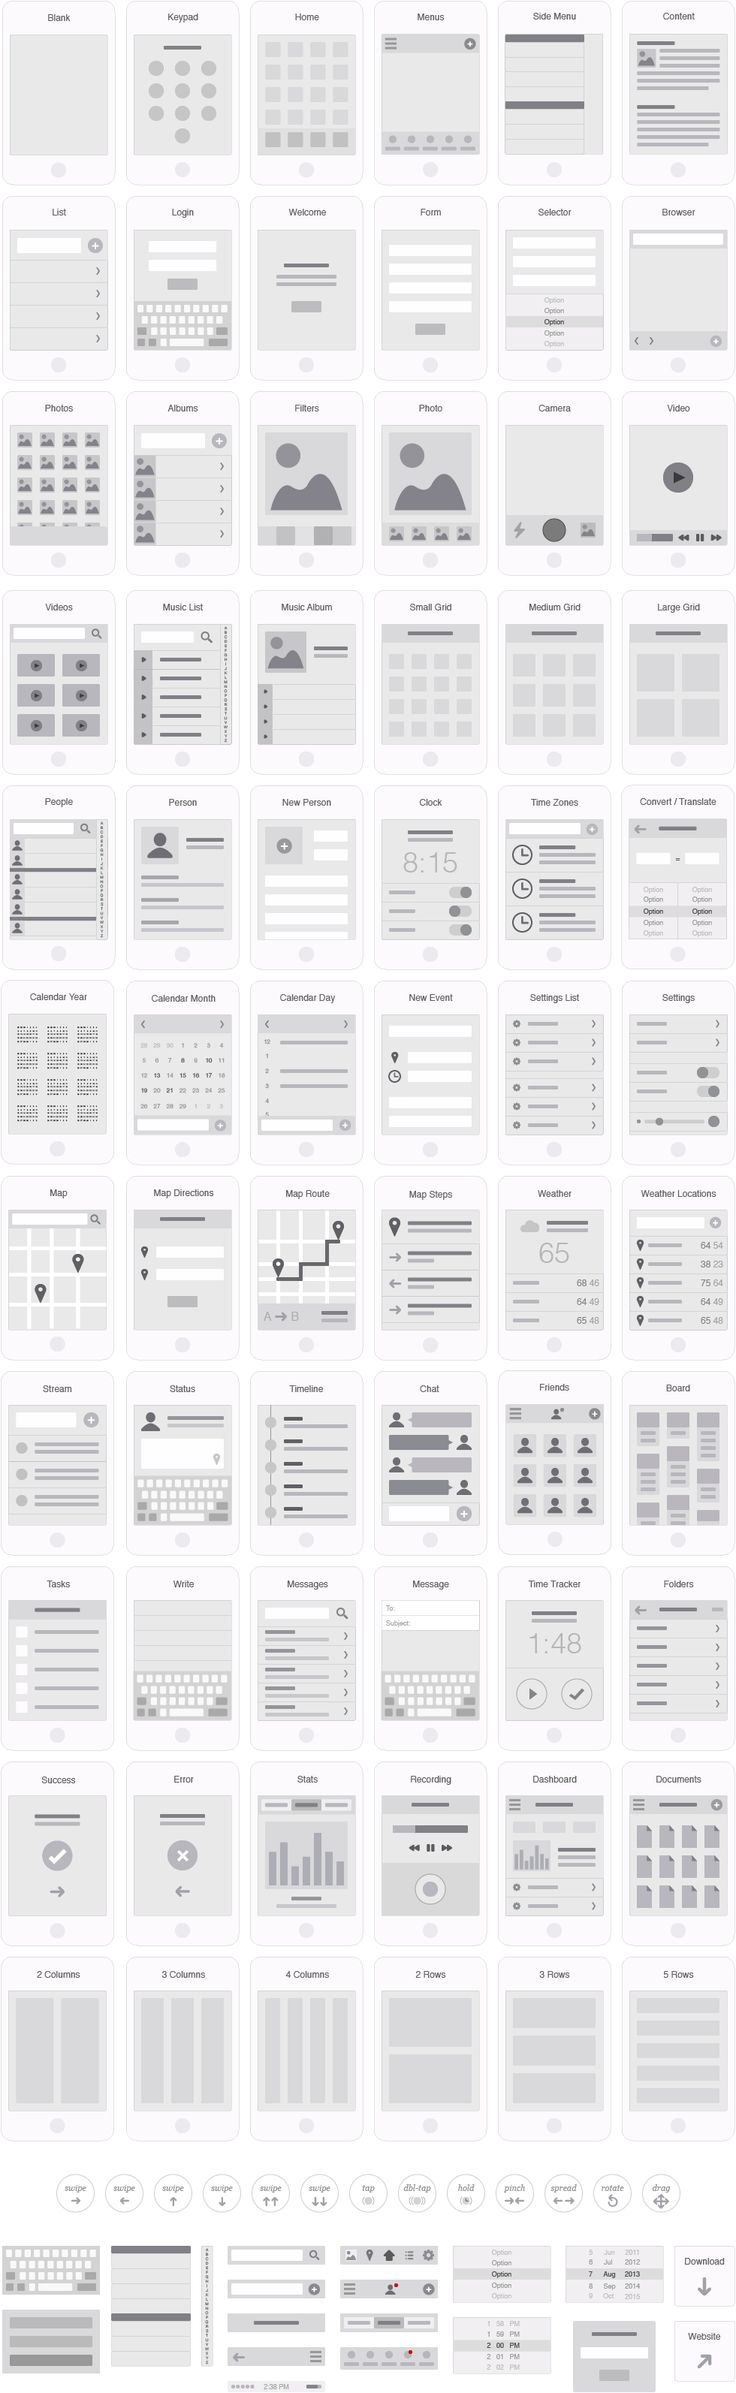 Mobile App Visual Flowchart Illustrator Template – UX Kits